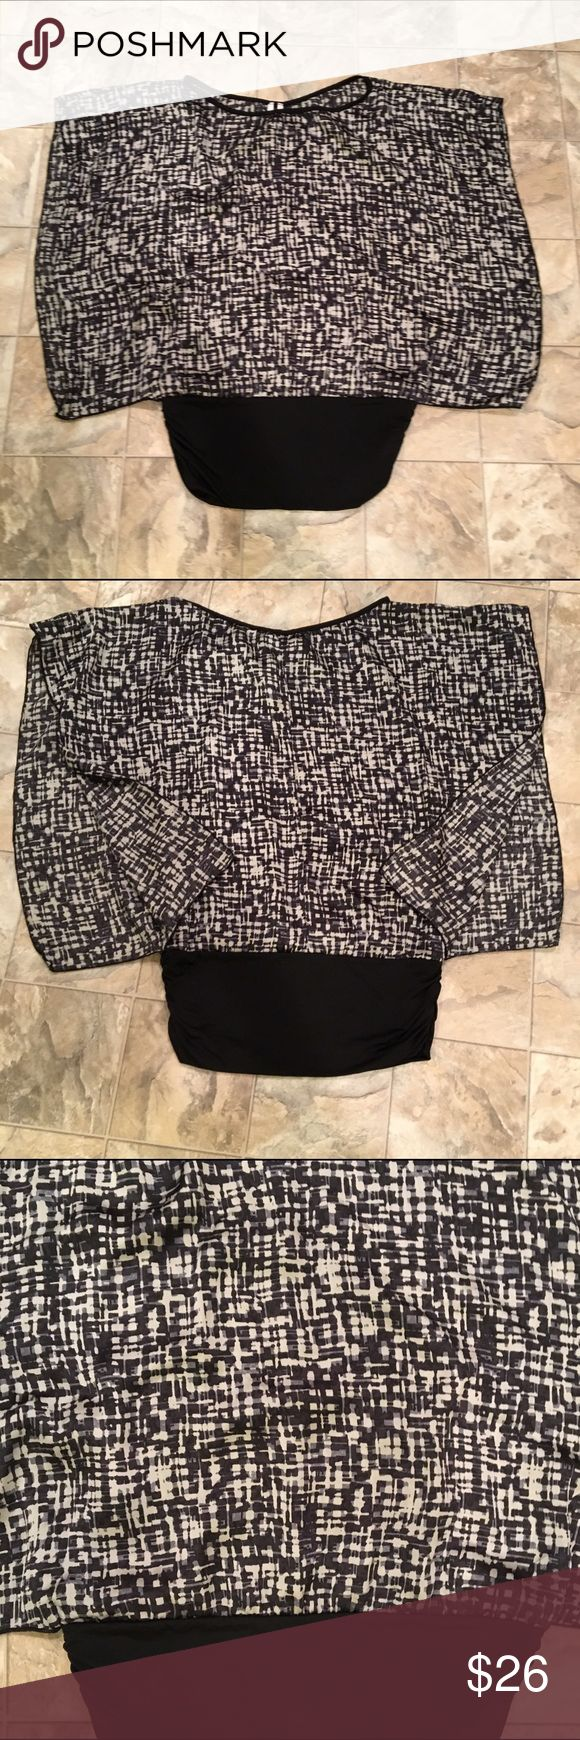 Batwing style shirt Beautiful Batwing style top | black stretchy waist band | satin feel material with dark blue, black and and cream colored crosshatch pattern | no brand label | size S | sleeves open up as shown in second pic Tops